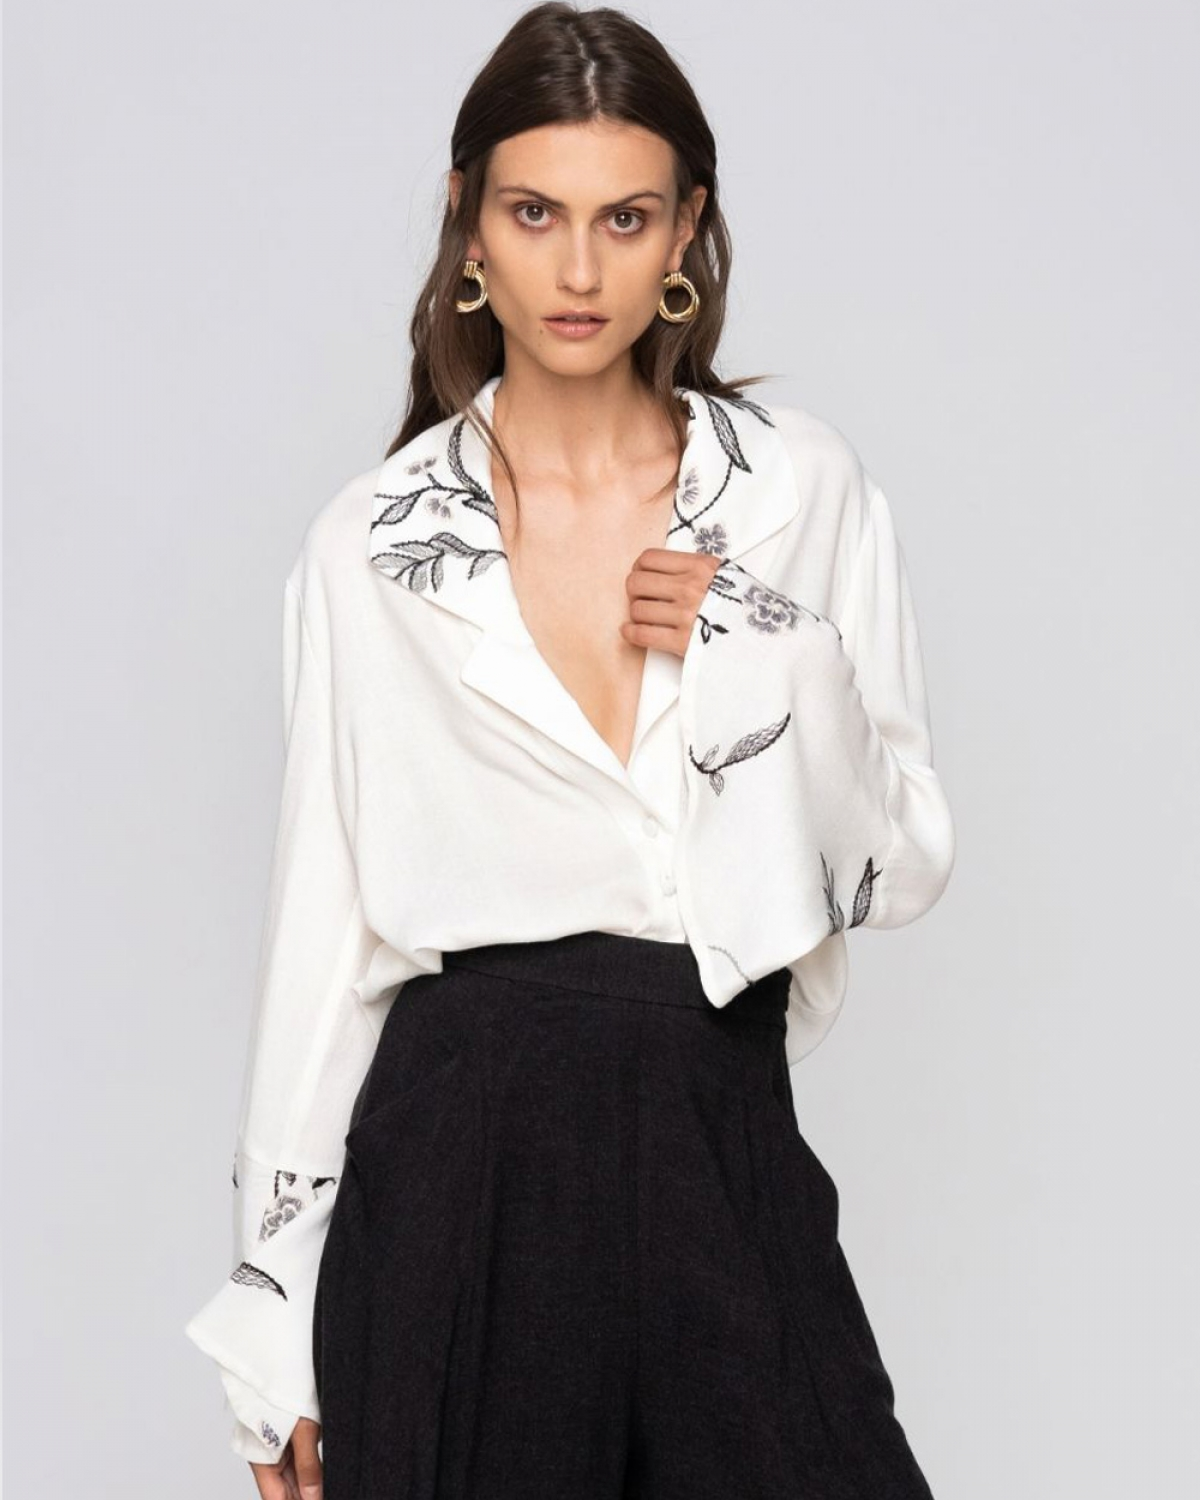 Embroidery White Shirt